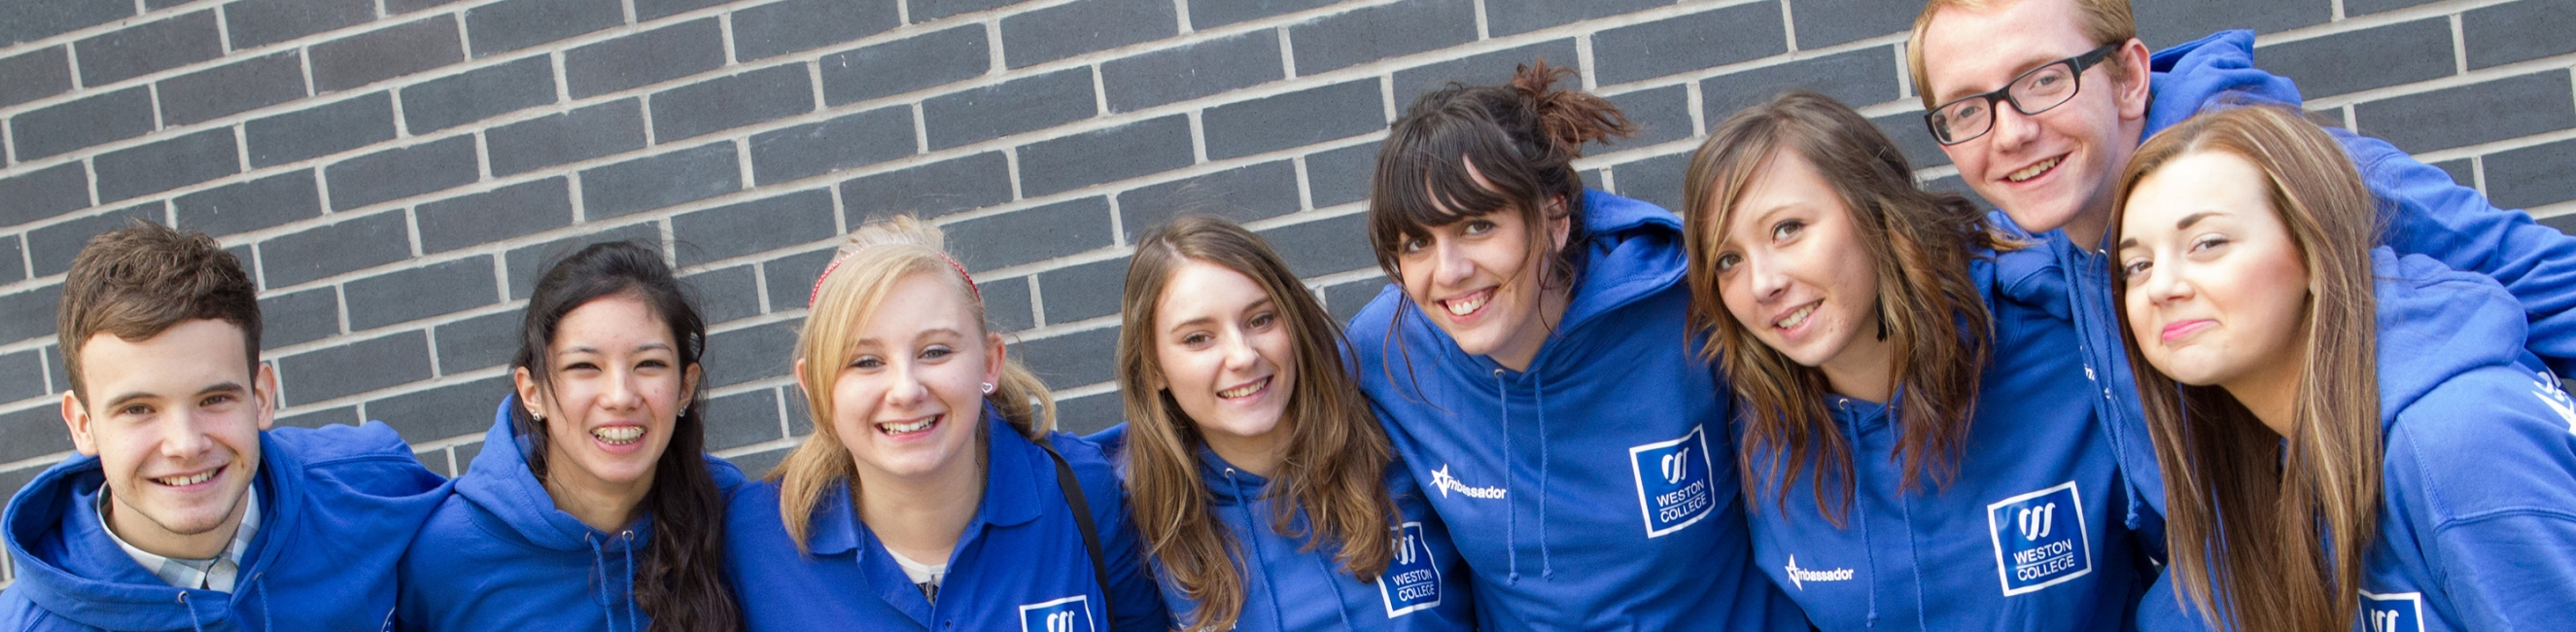 Weston College, Student Ambassadors, Further and Higher Education for 16-18 year olds